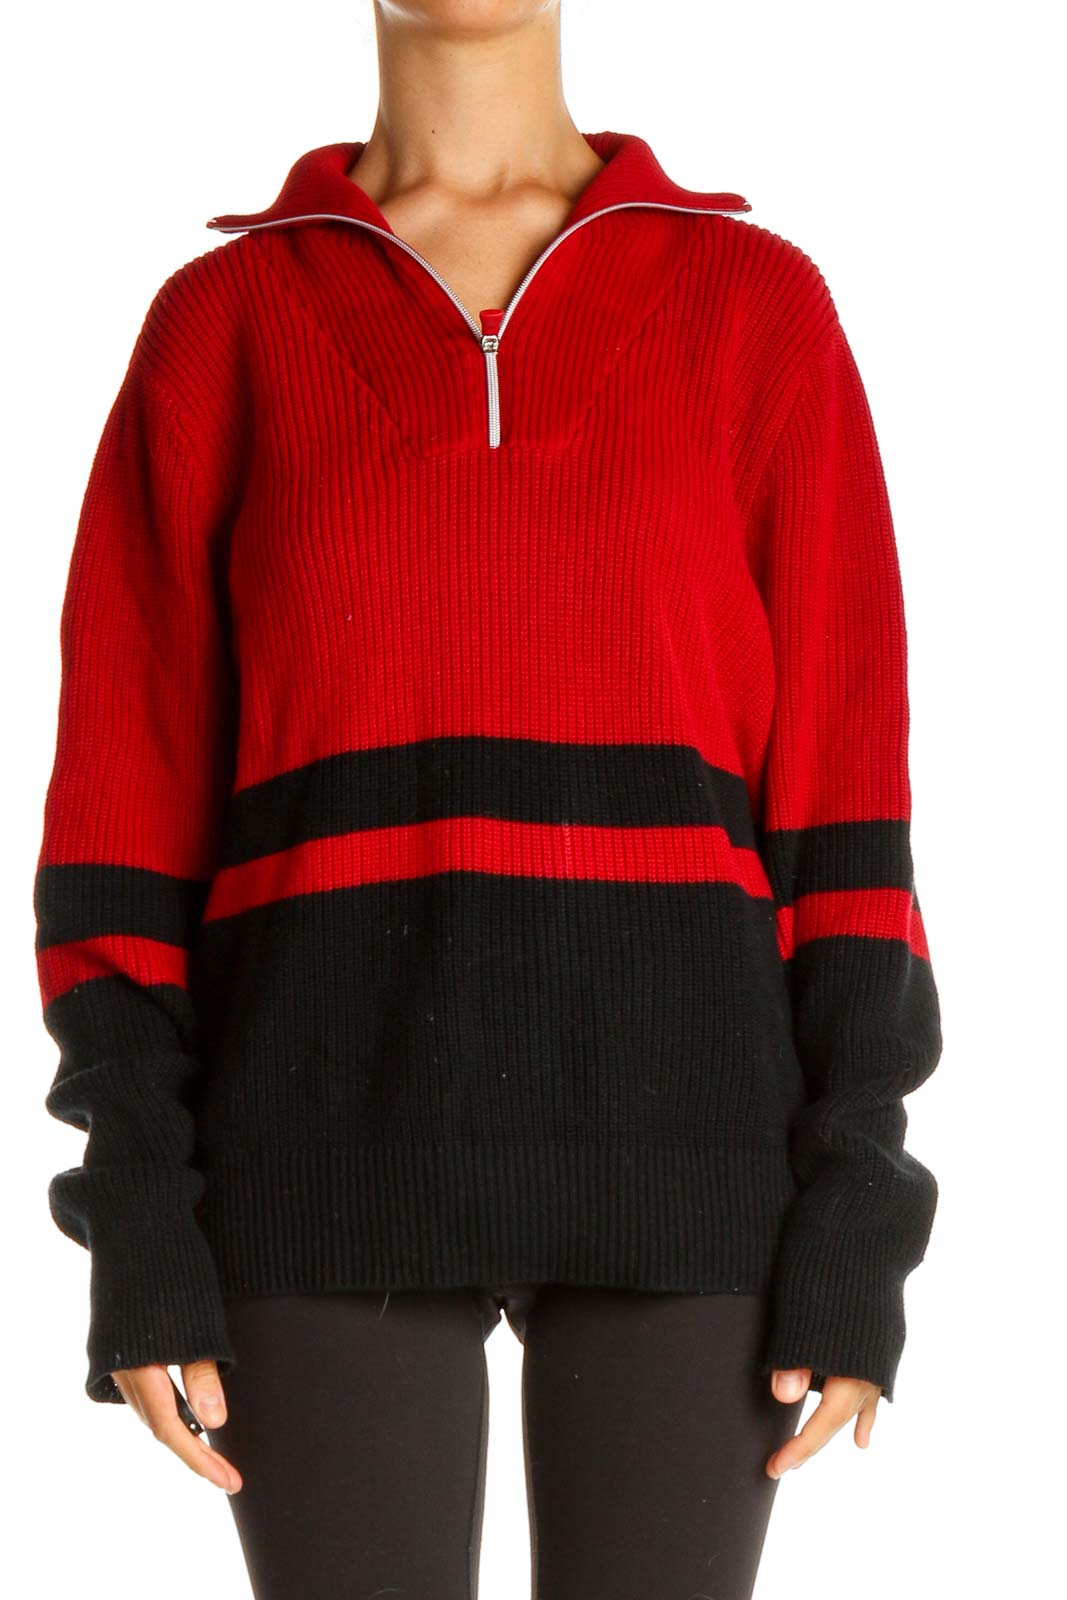 Red Colorblock Retro Sweater Front